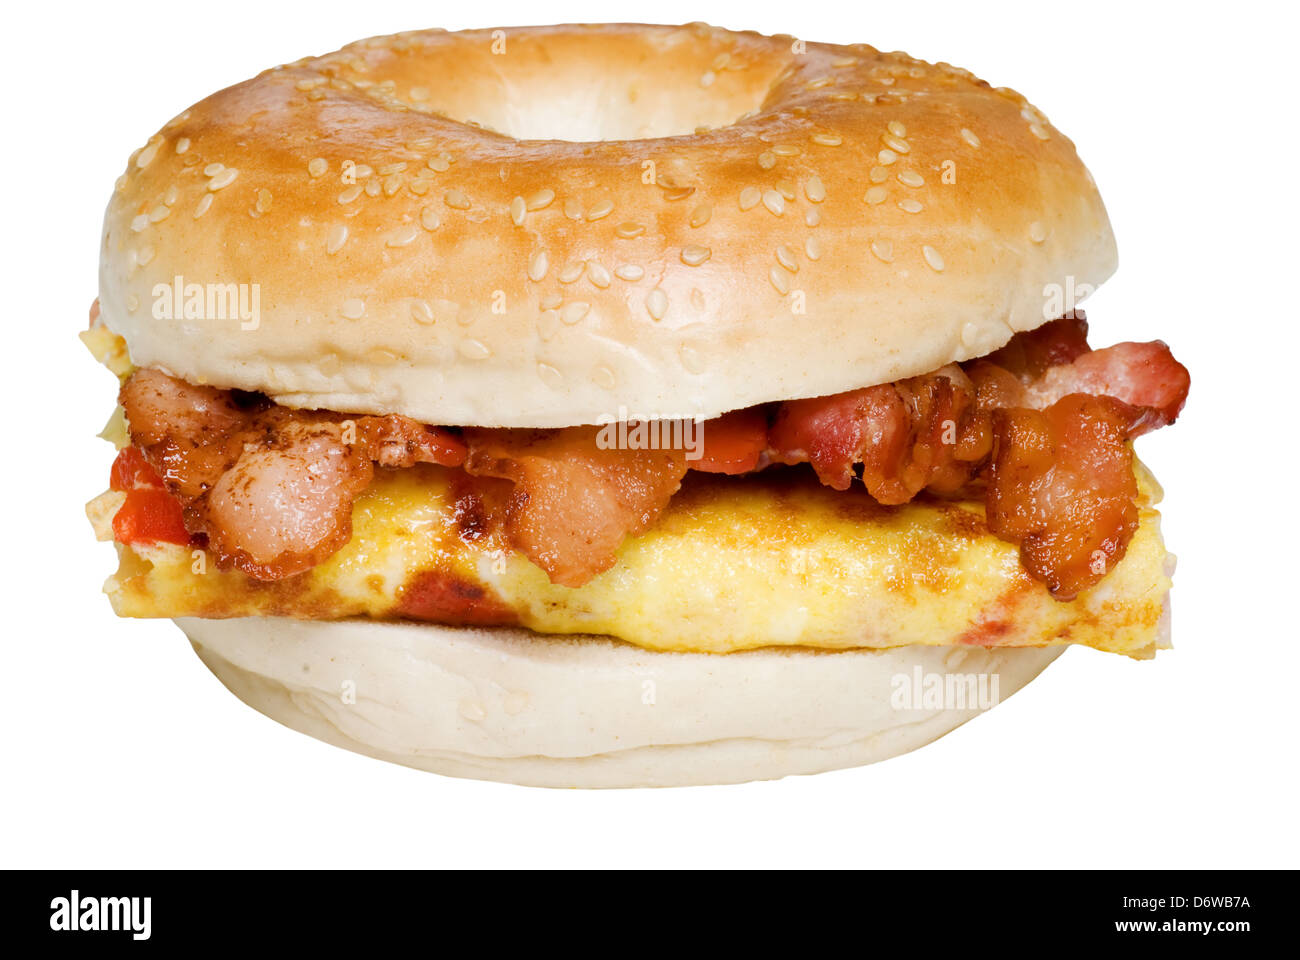 Isolated Bagel Omelet and bacon sandwich close up - Stock Image